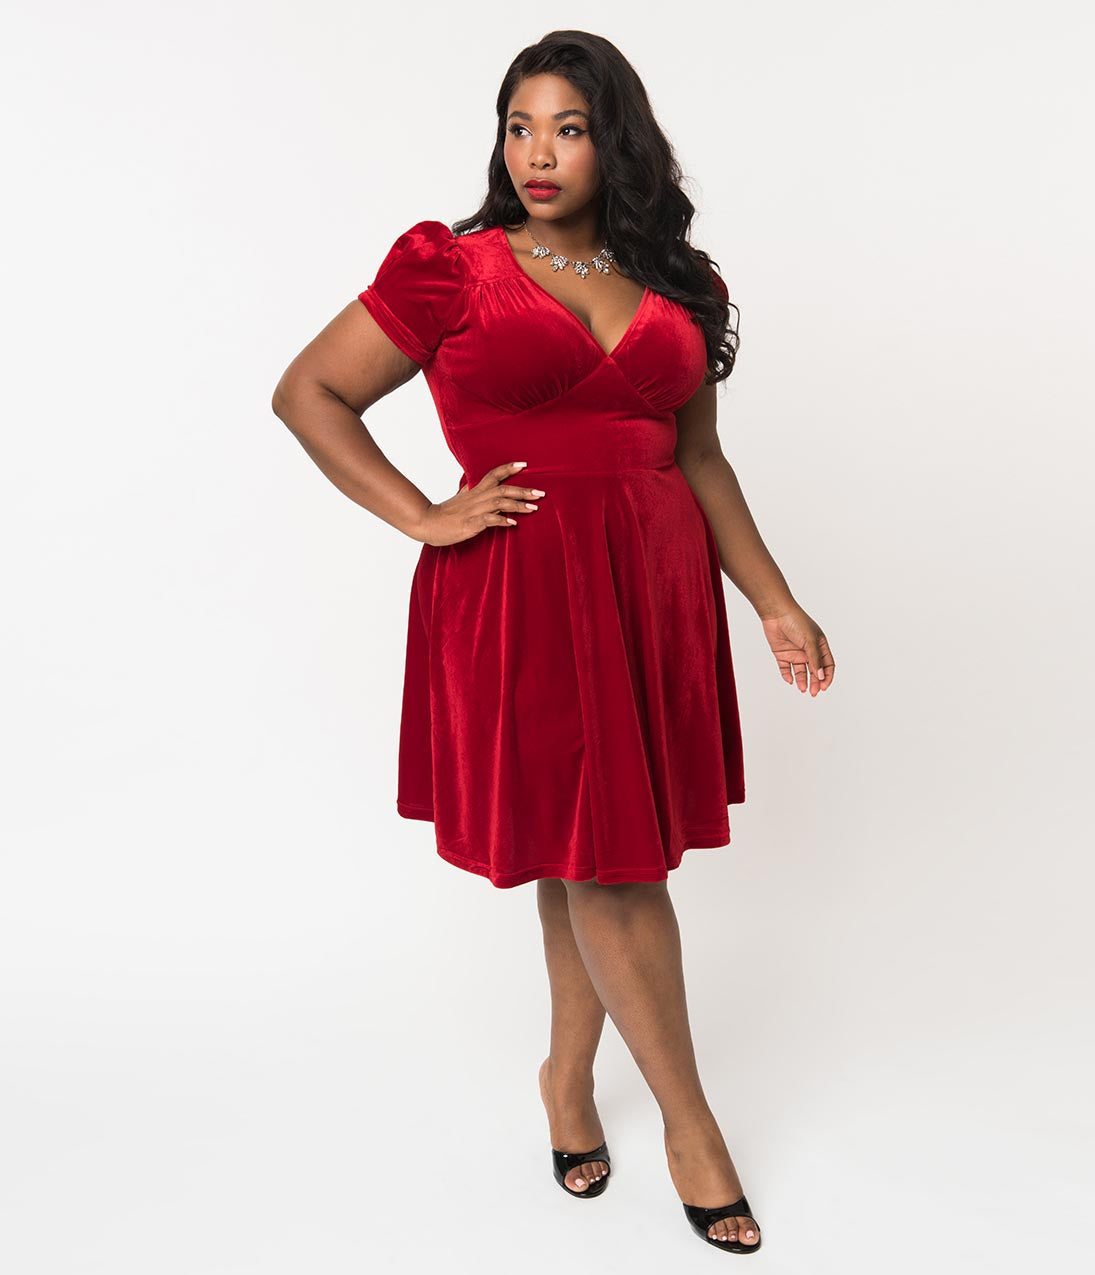 1950s Dresses, 50s Dresses | 1950s Style Dresses Hell Bunny Plus Size Red Velvet Short Sleeve Flare Holiday Dress $78.00 AT vintagedancer.com